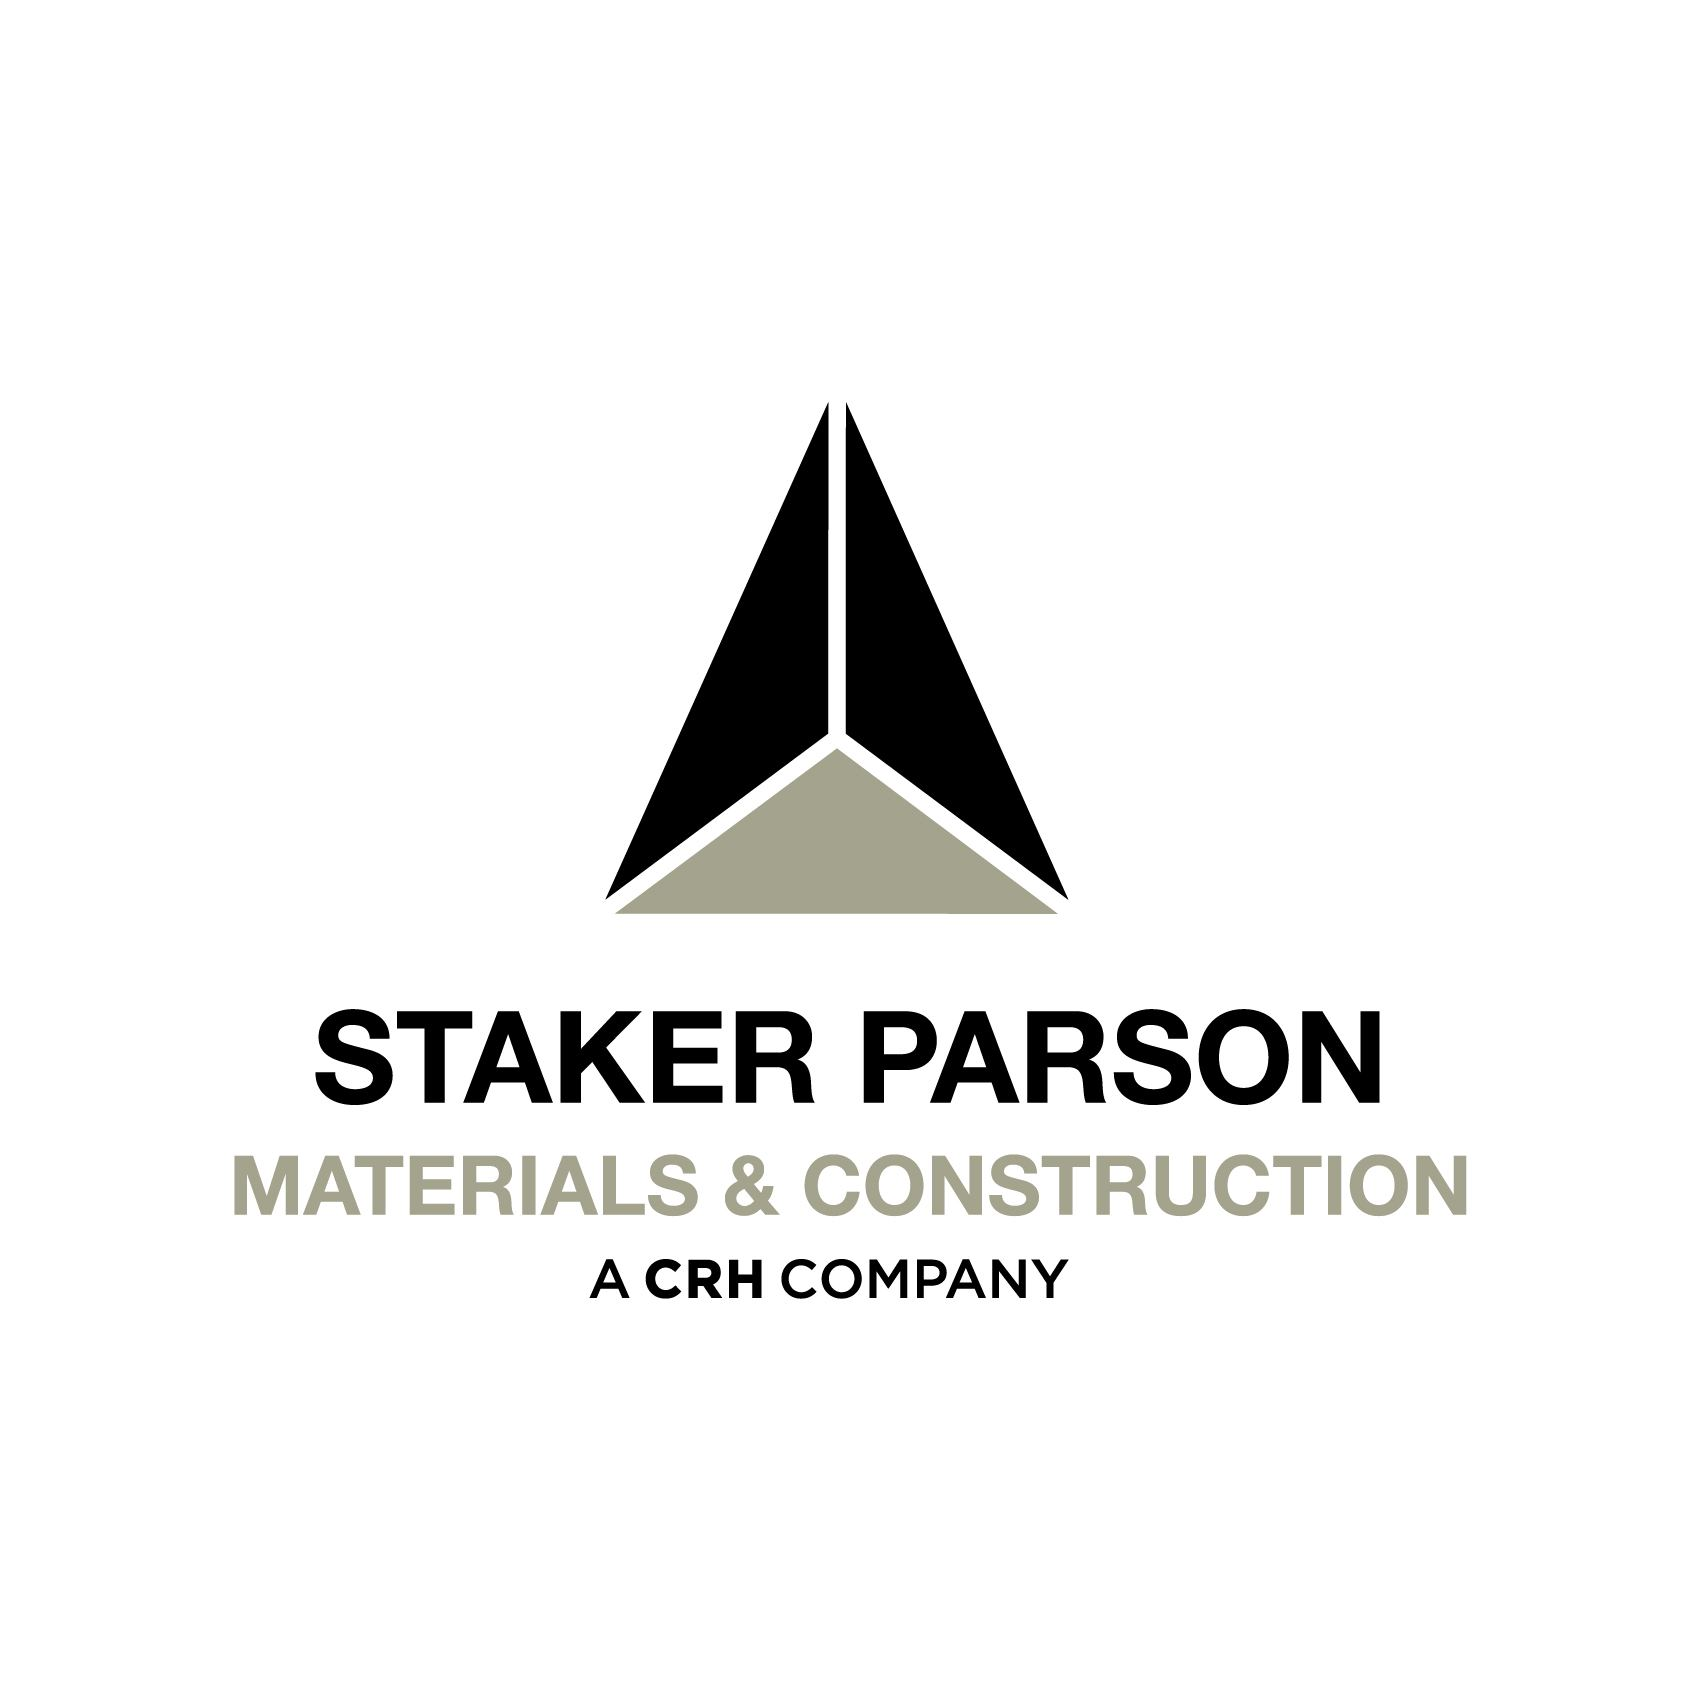 Staker Parson Materials & Construction Logo